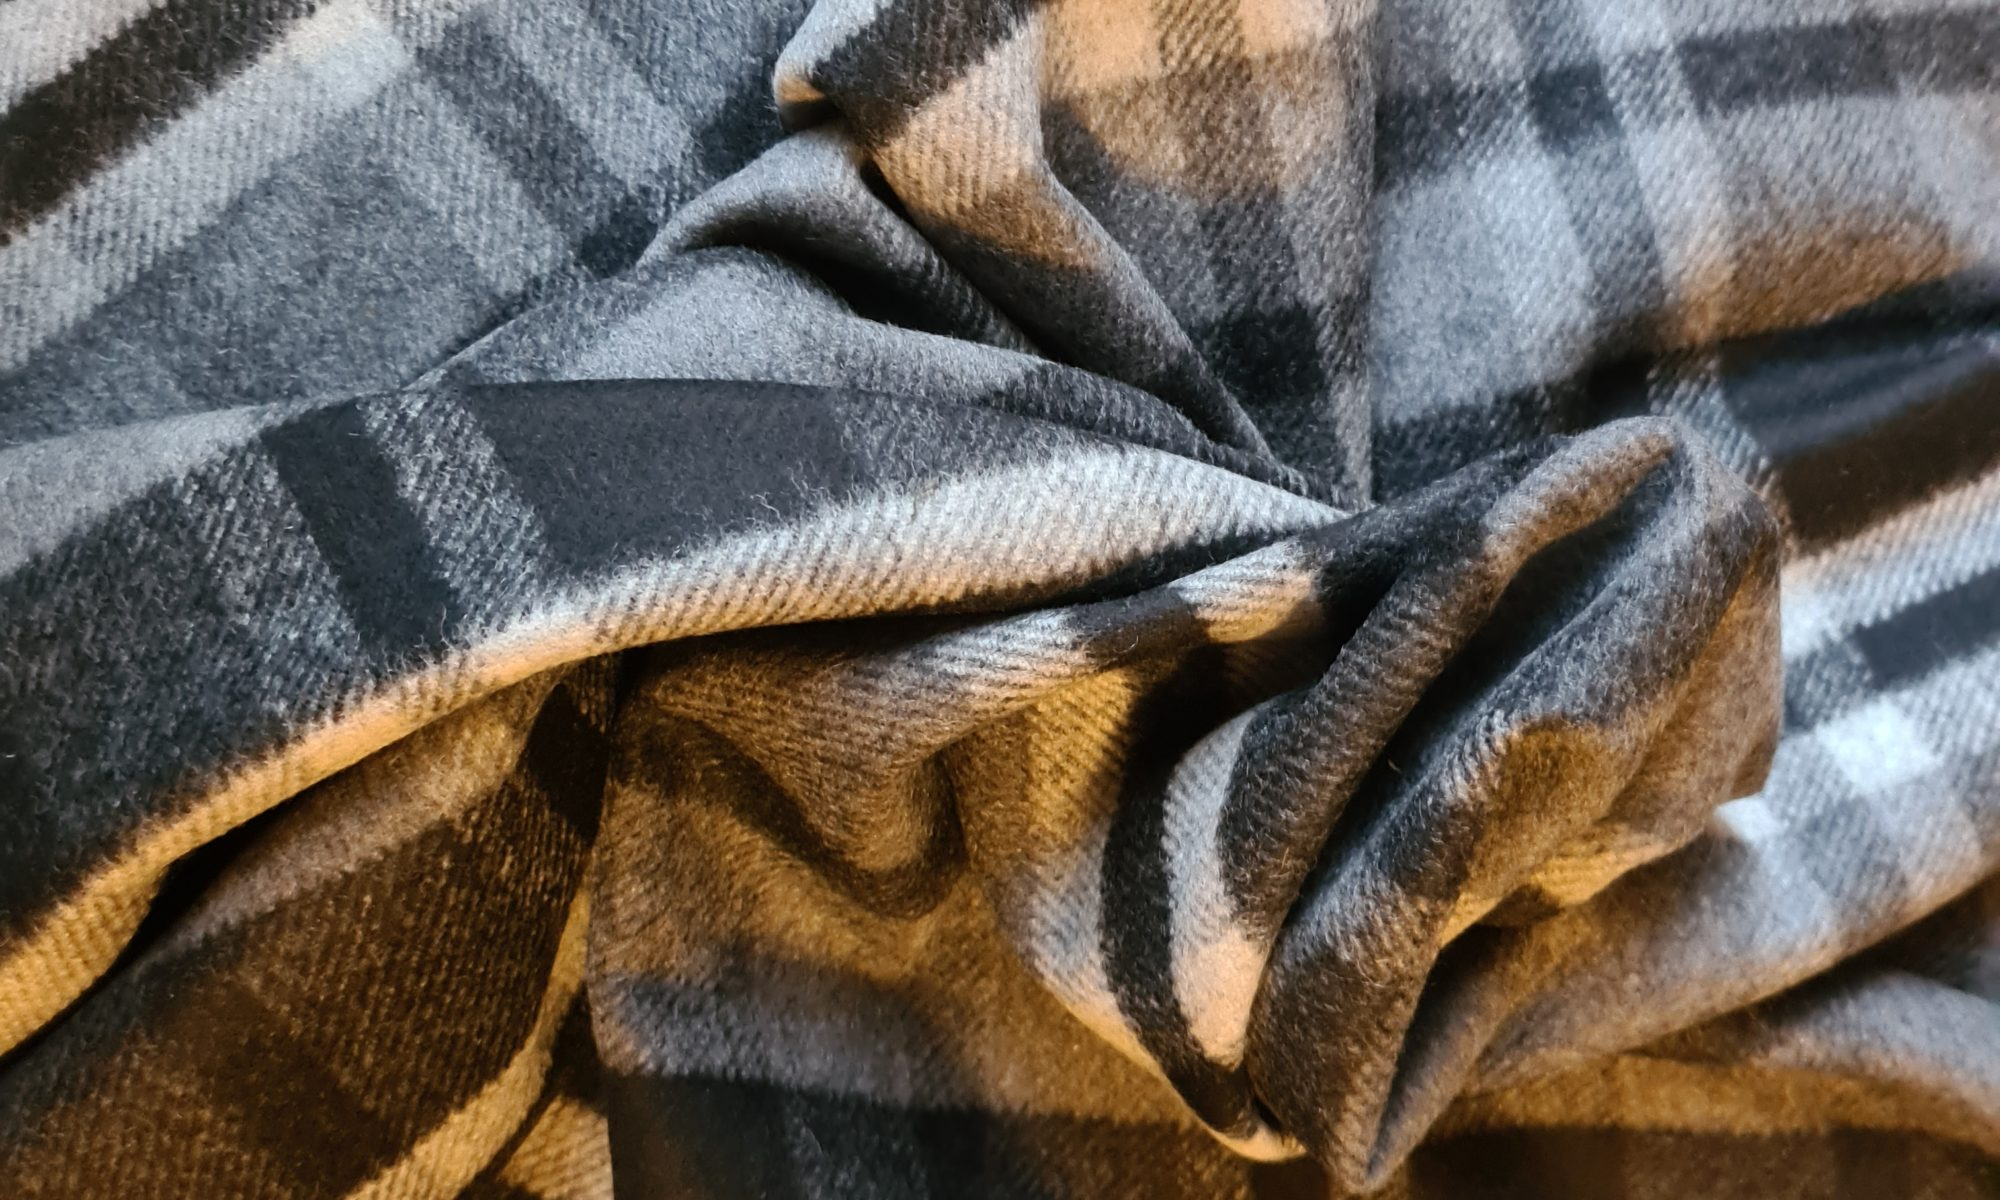 7700 maxi tartan wool coat fabric WIDTH cm150 WEIGHT gr480 - gr320 square meter - COMPOSITION 70 Wool 25 Polyester 5 Other - 150mts